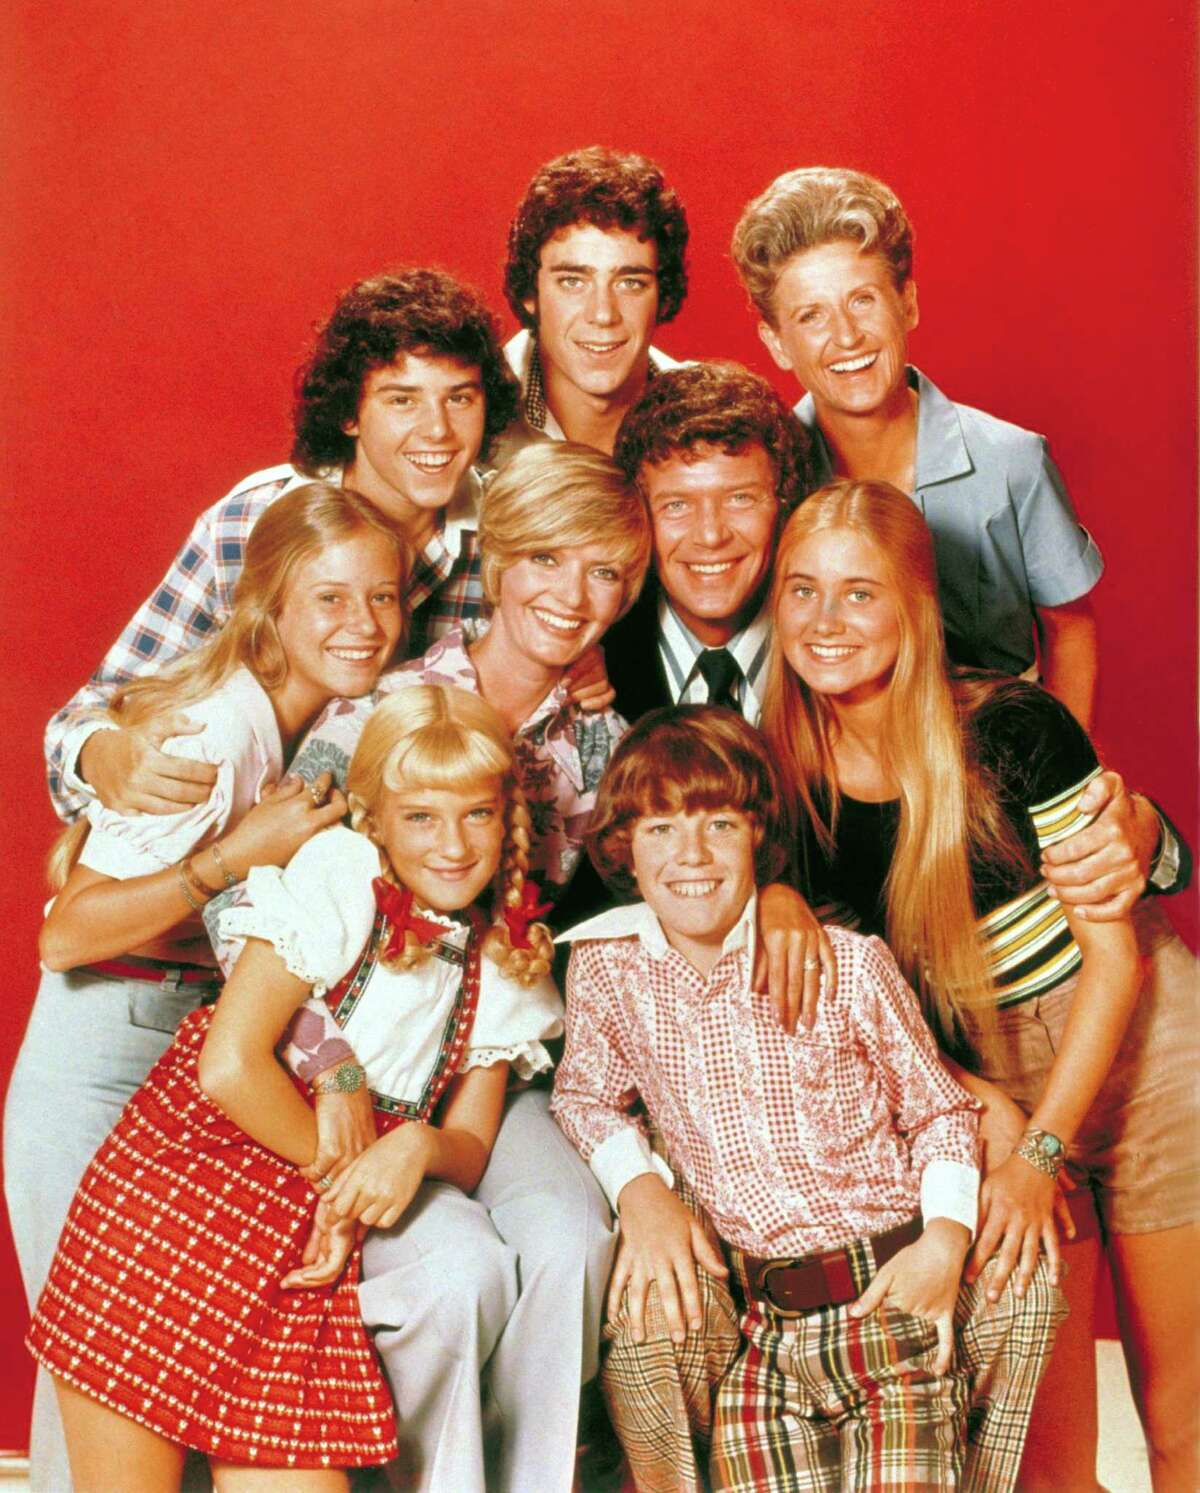 The Bradys, 'The Brady Bunch'It may be kind of fun to try on that old polyester suit and go back in time to the '70s. But then again ...